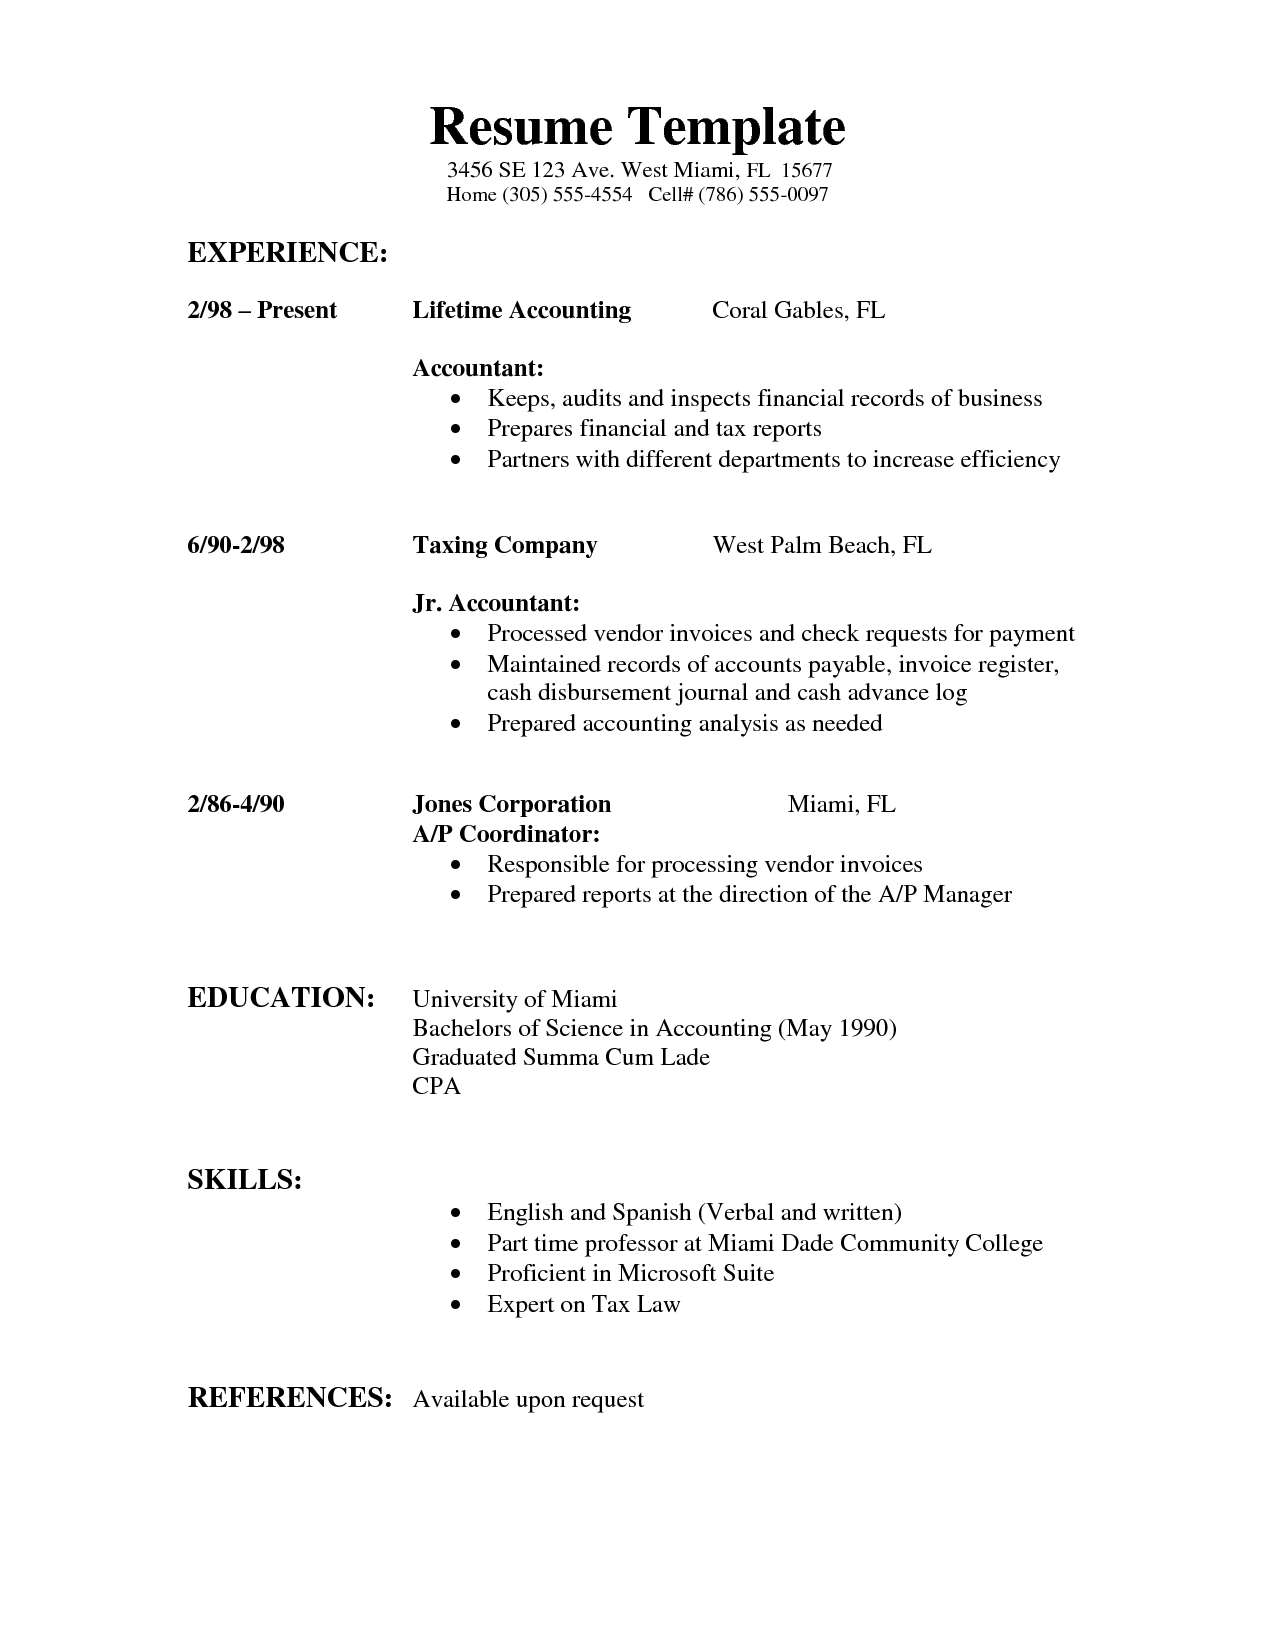 example resume template 05052017